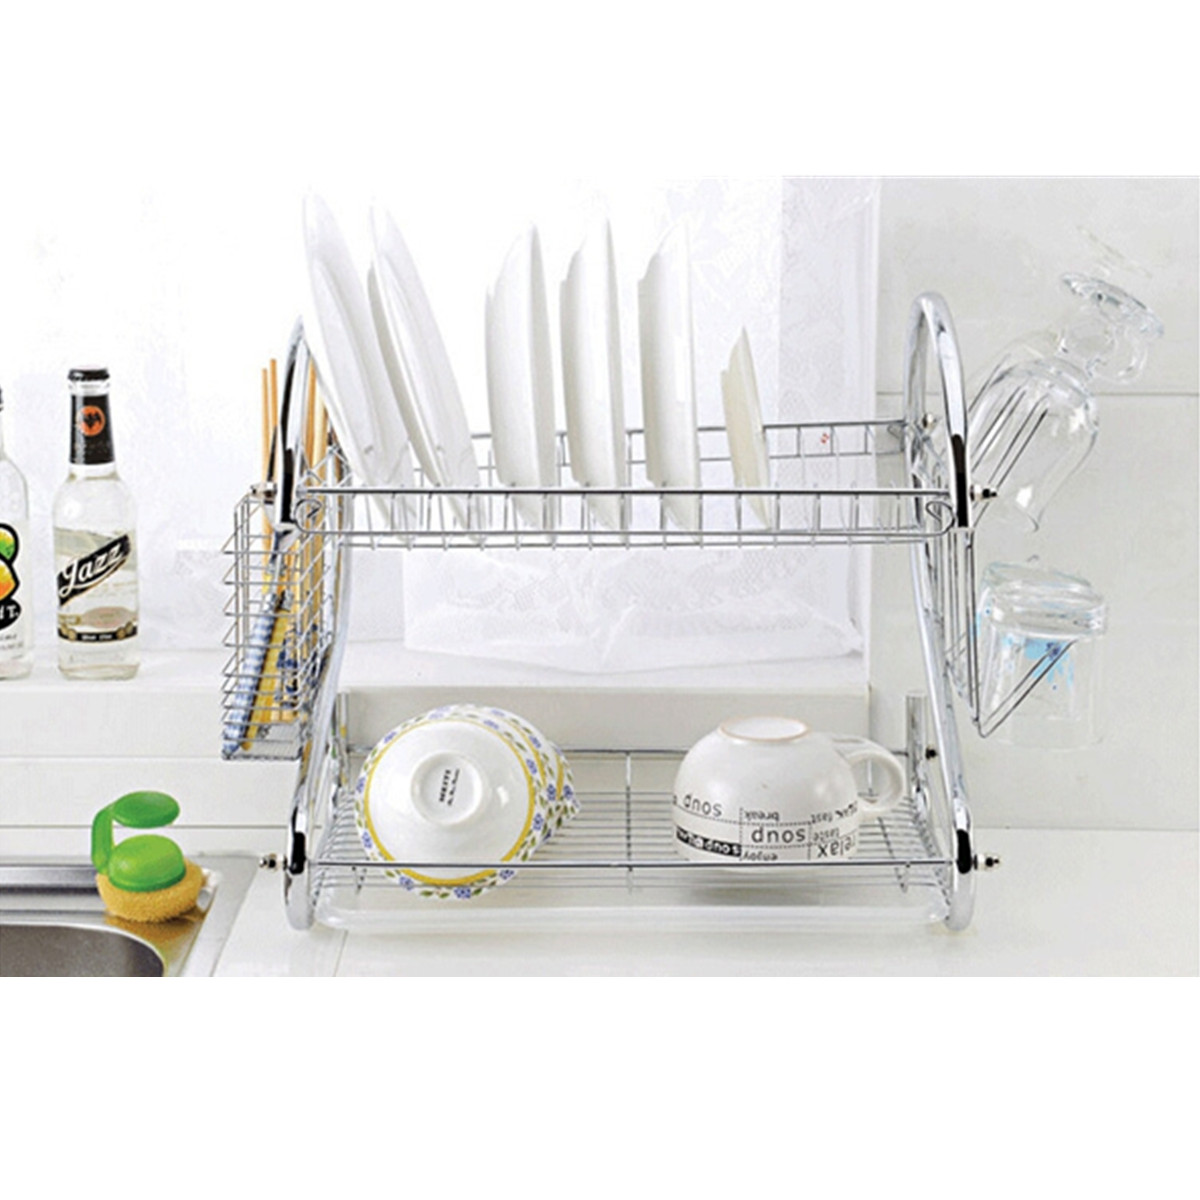 Stainless Steel Dish Rack 2 Tier Space Saver Dish